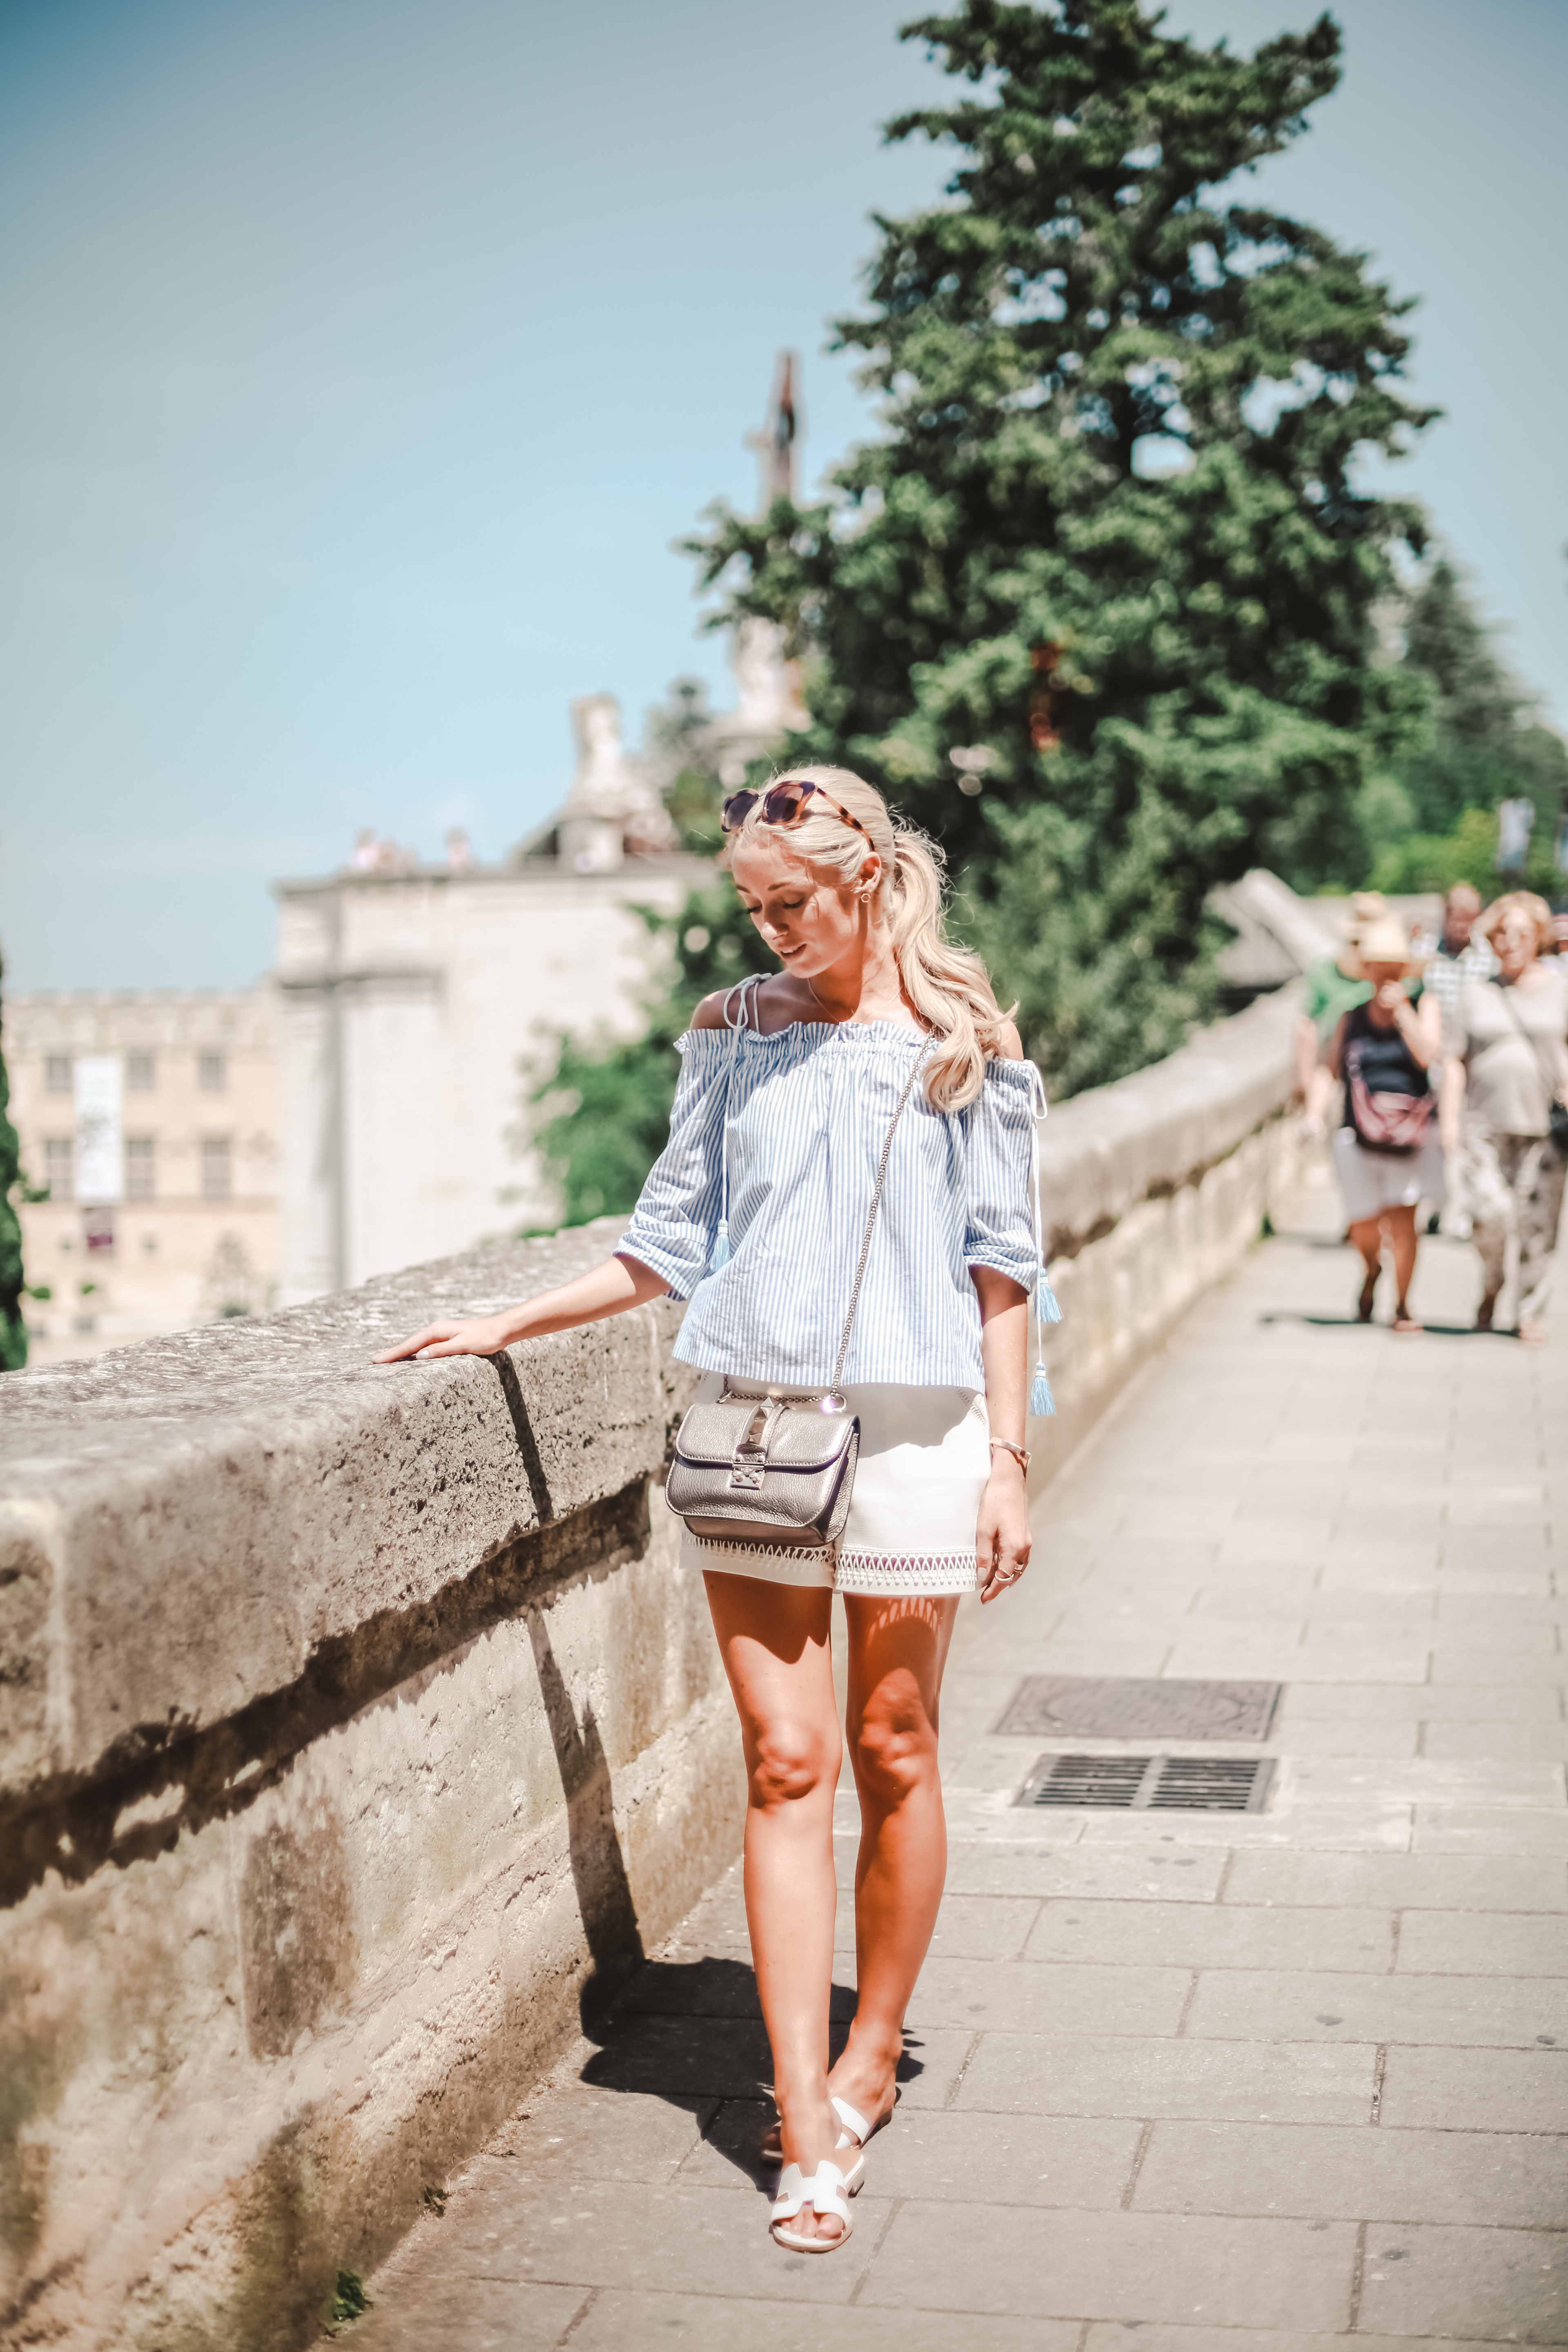 Walking through the streets of Avignon we popped into a few of the boutiques, many of which selling local crafts and stylish fashion pieces including ...